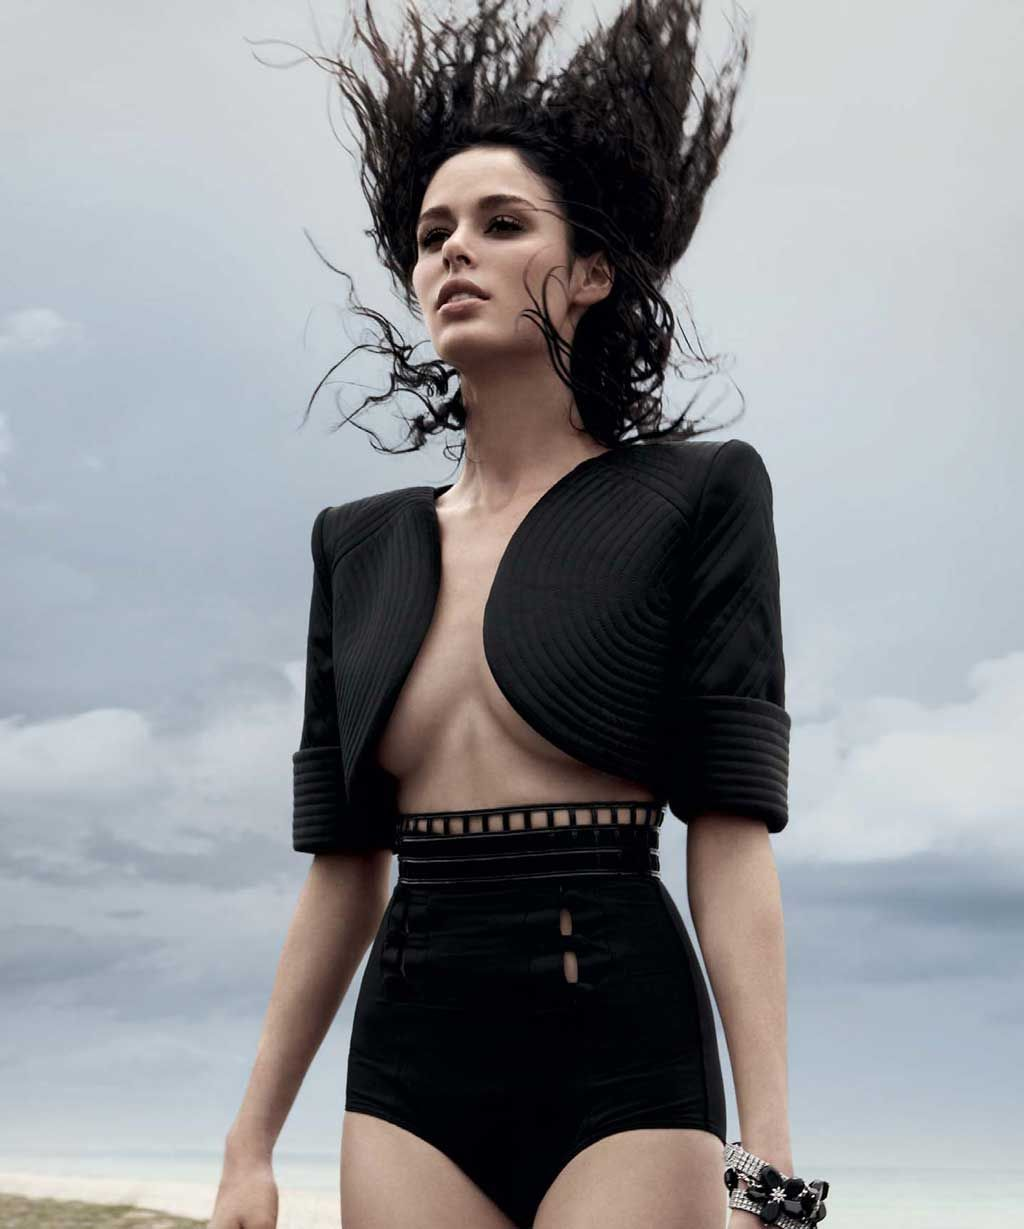 Nicole trunfio ocean drive magazine july 2009 by greg lotus hq photo shoot naked (71 photo), Boobs Celebrity photos